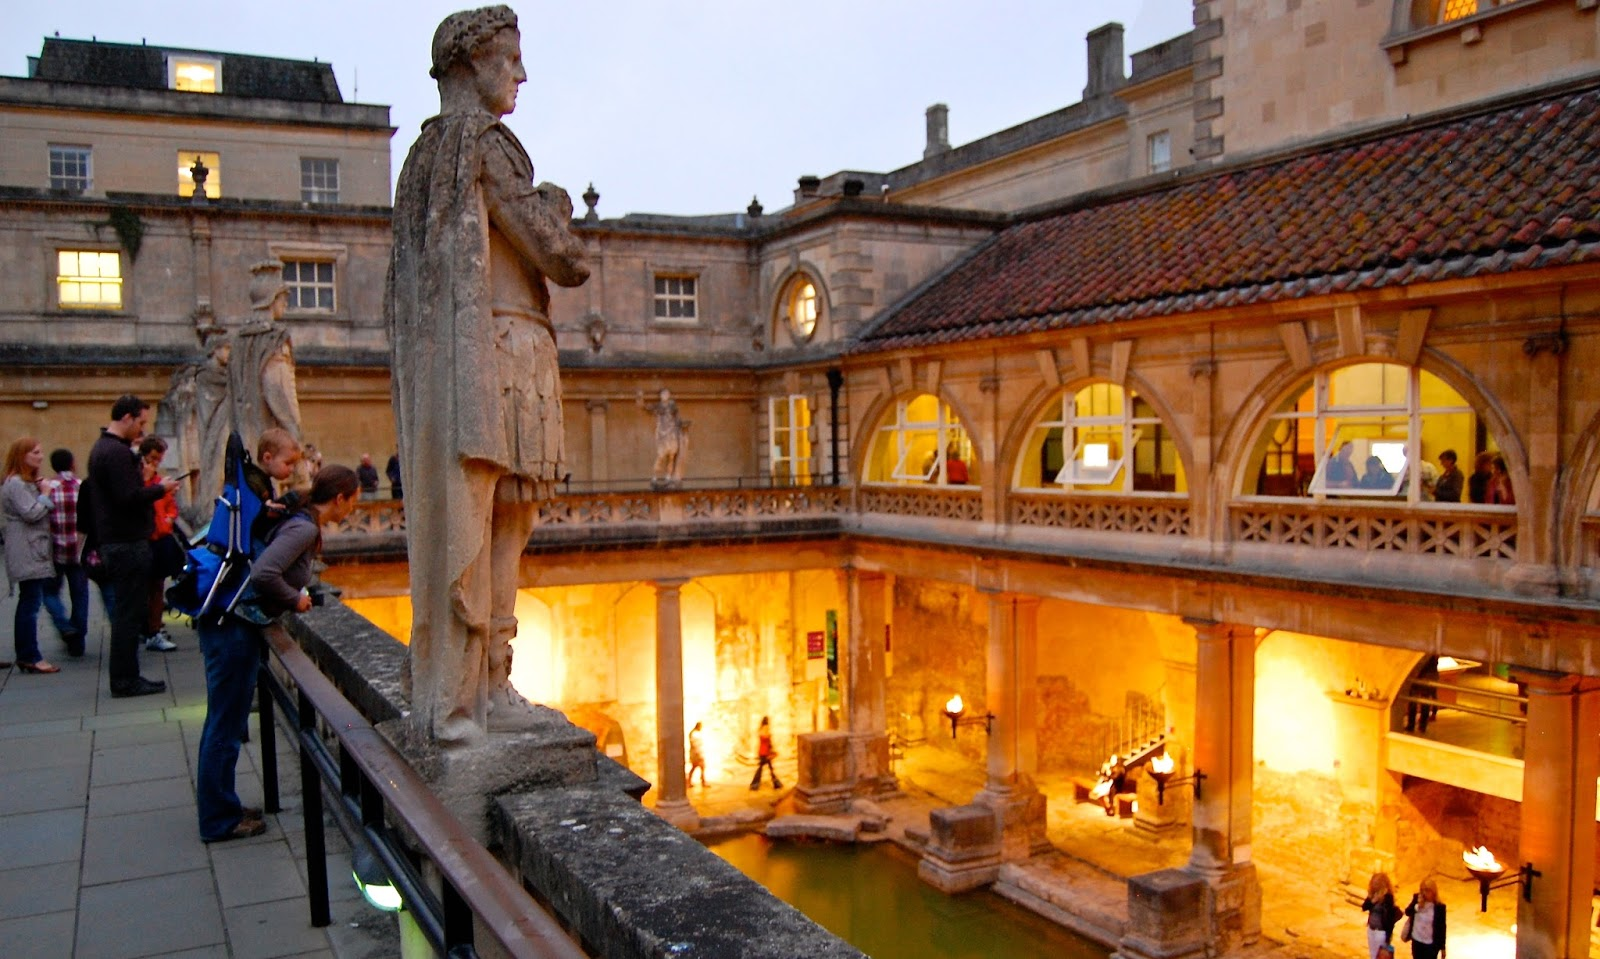 Roman spa in Bath, England